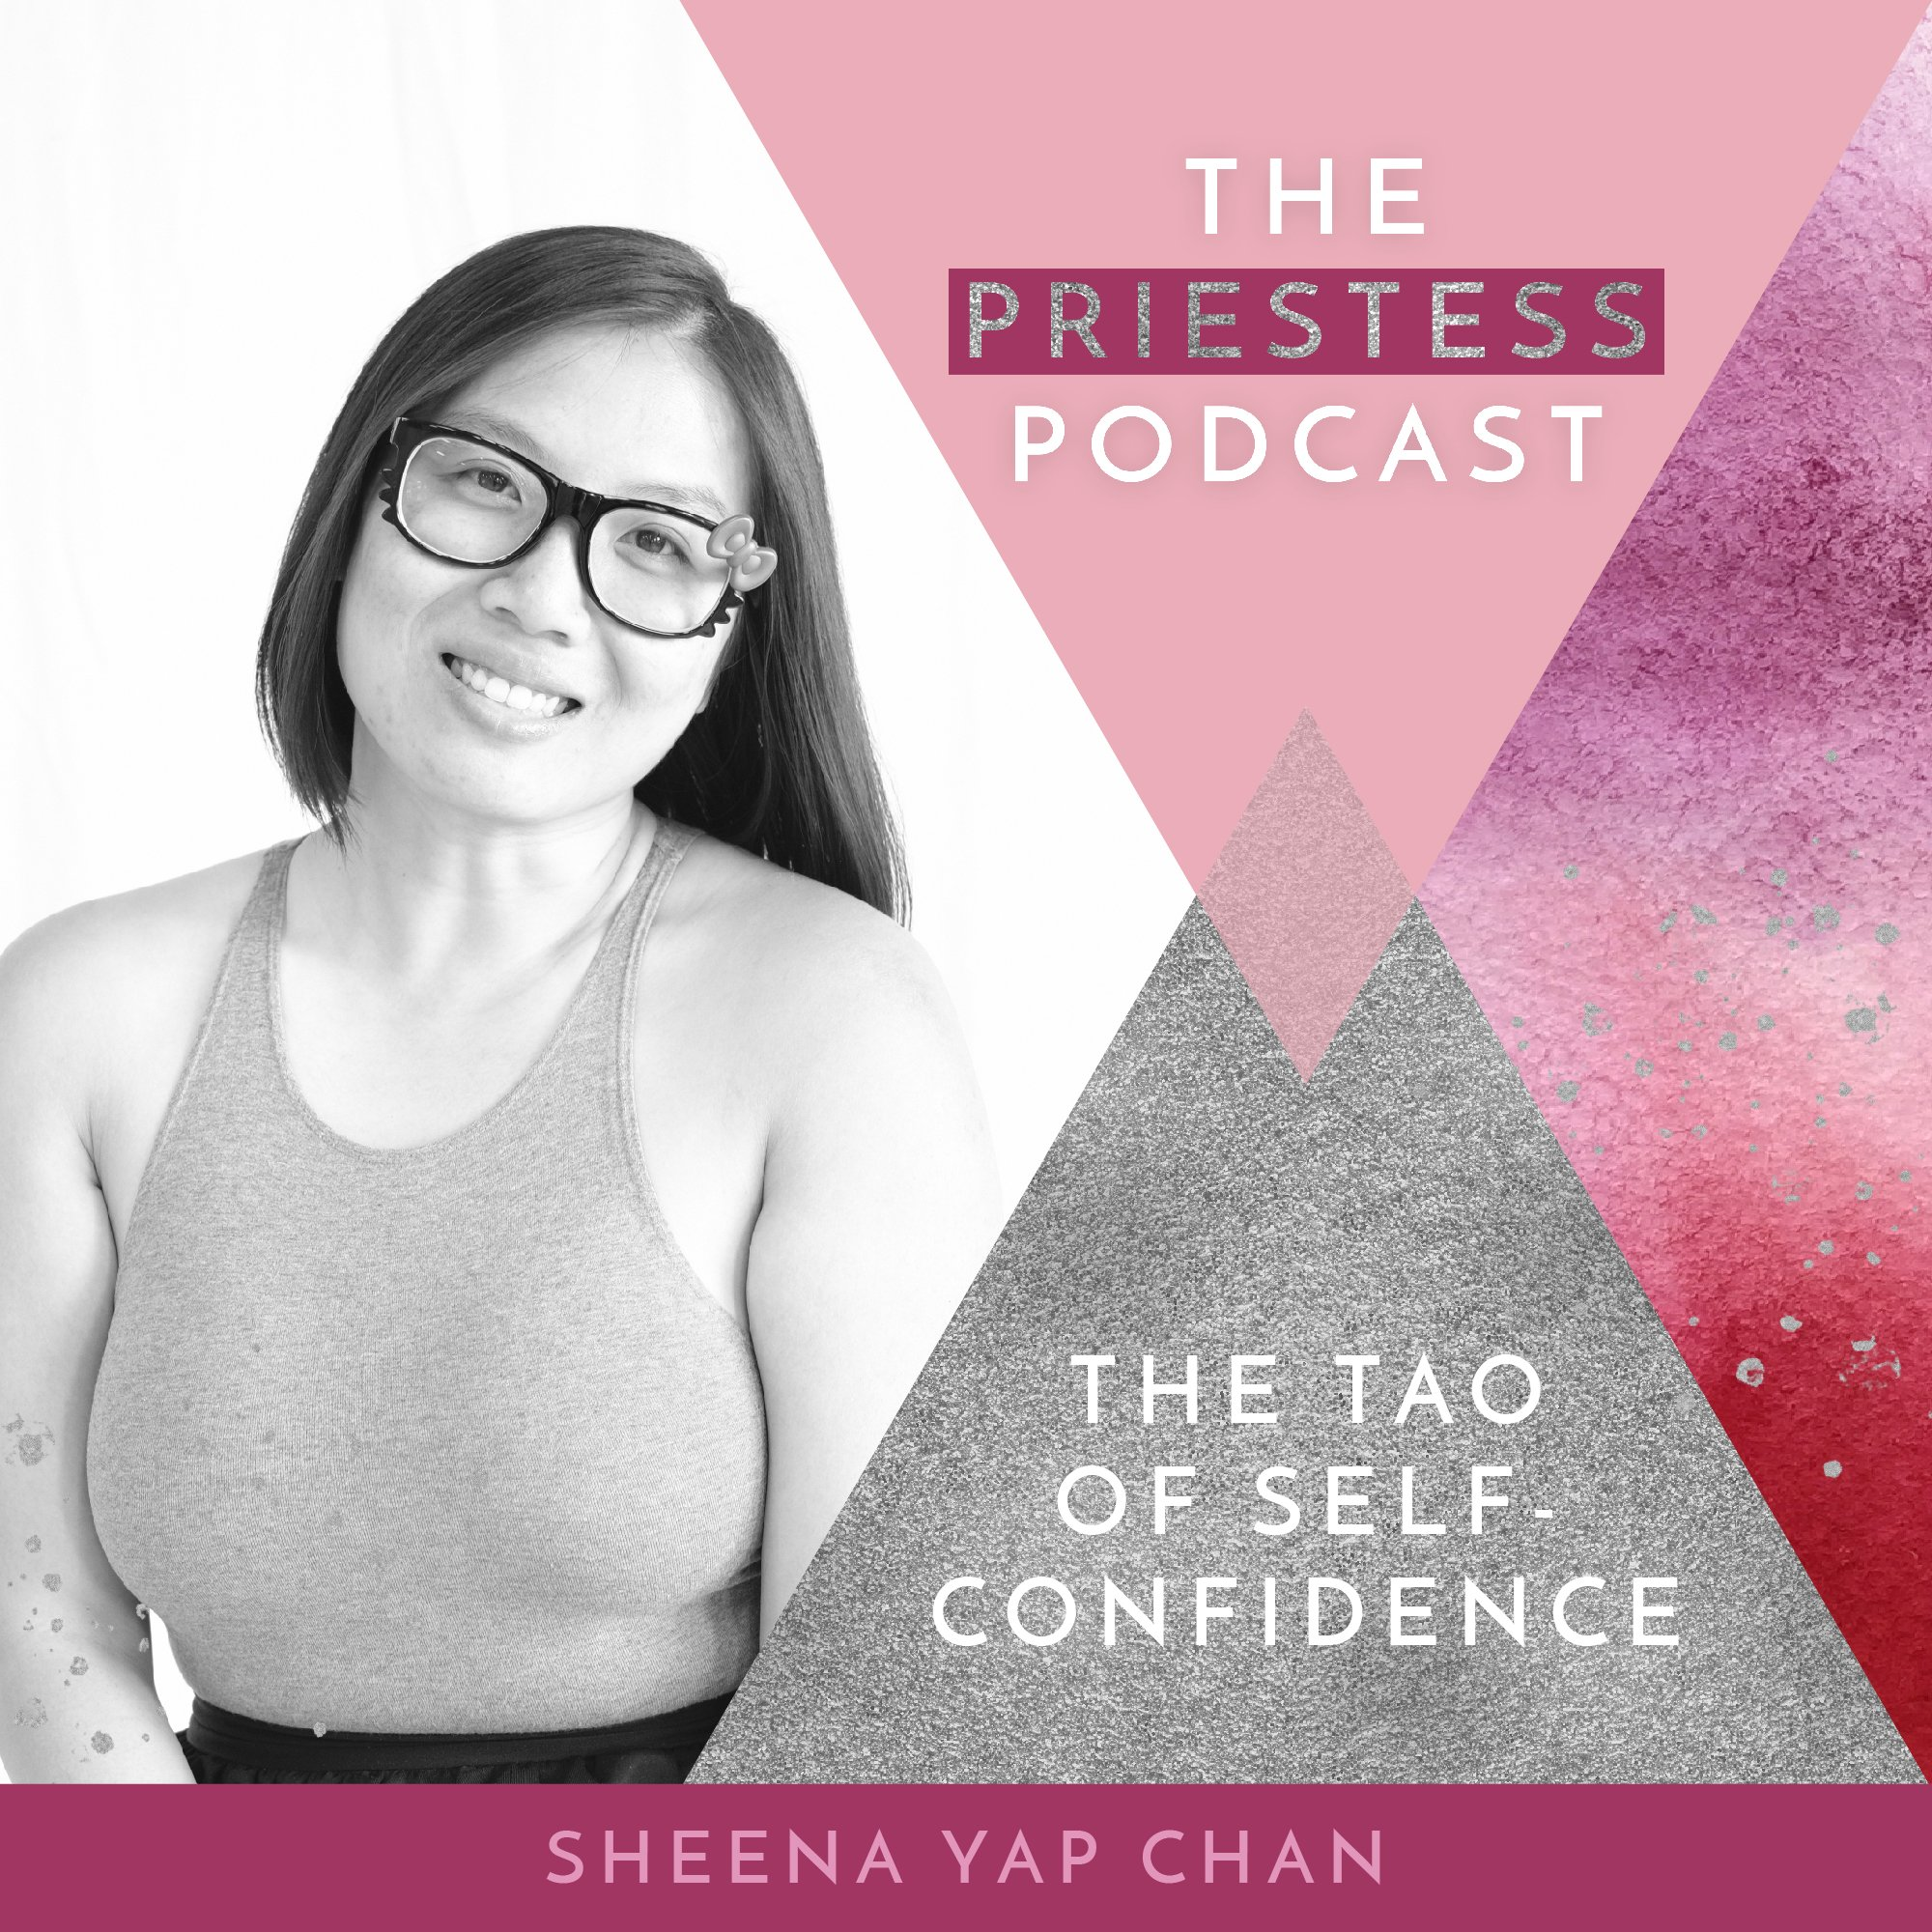 Sheena Yap Chan on The Tao of Self-Confidence